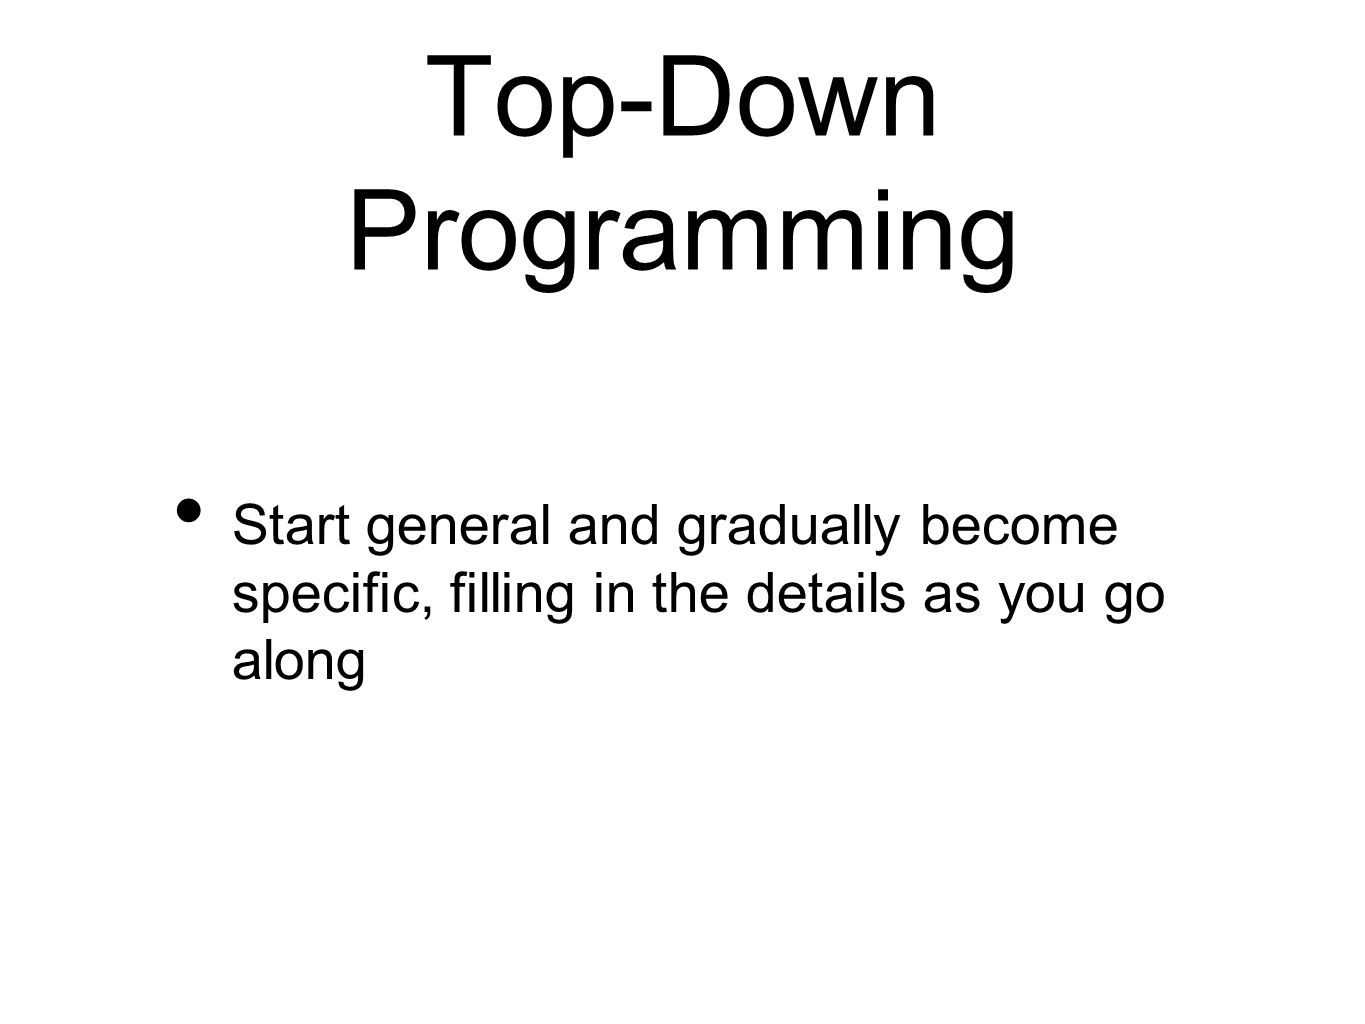 Top-Down Programming Start general and gradually become specific, filling in the details as you go along